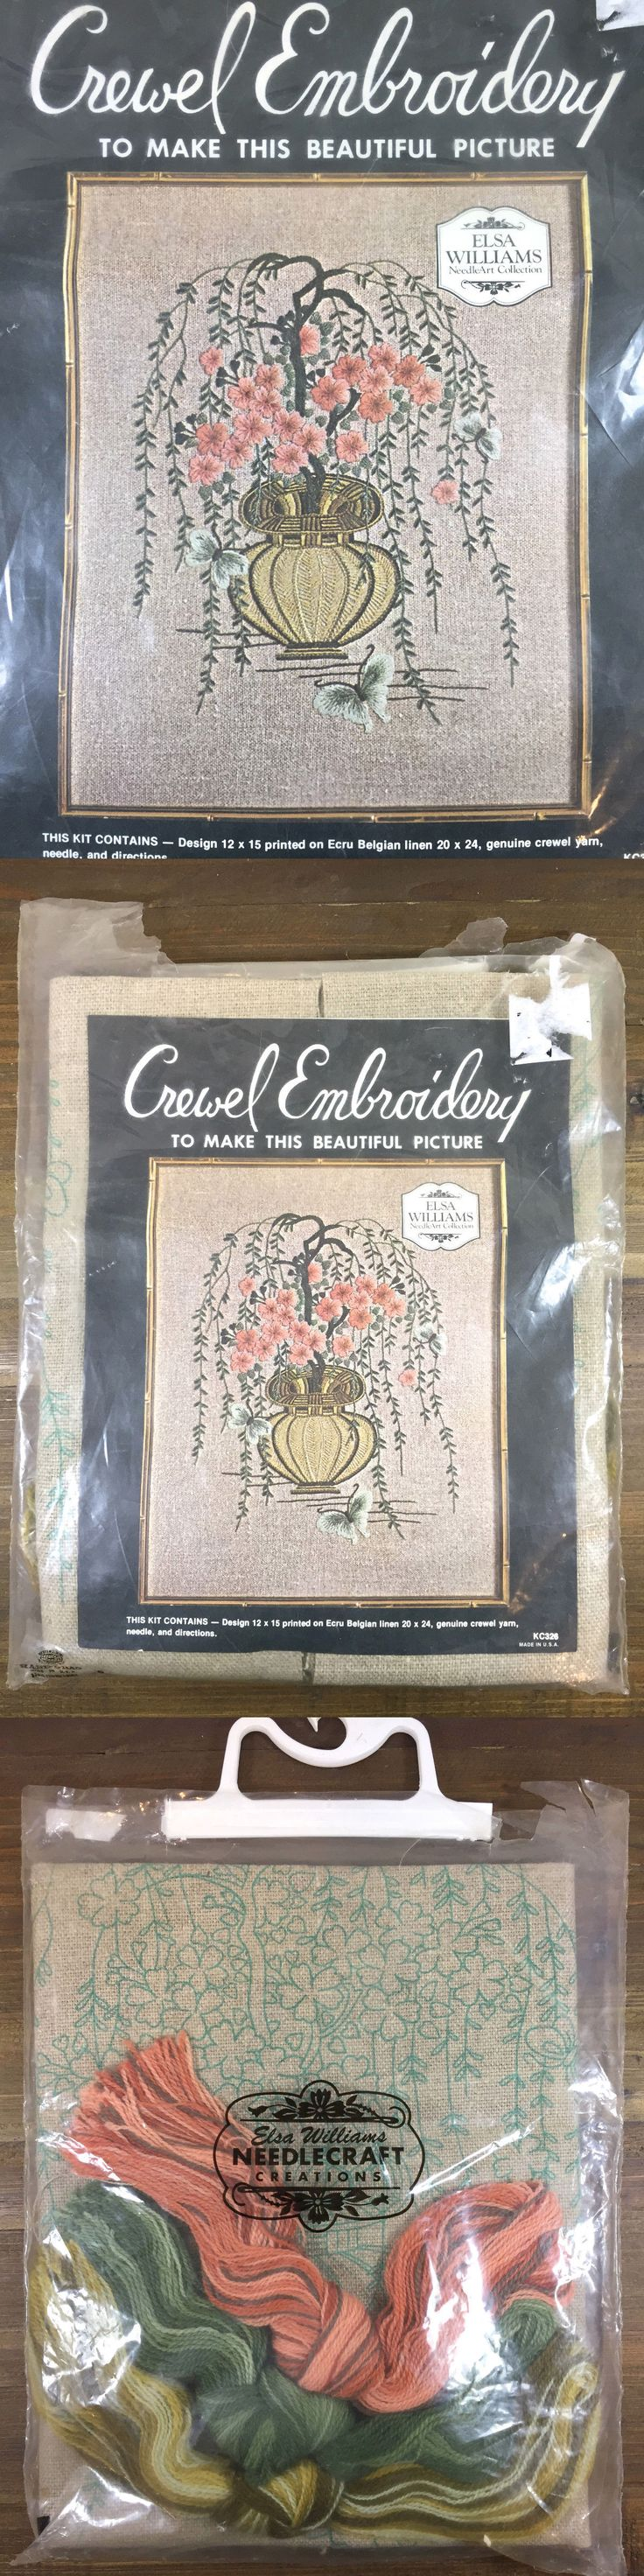 Crewel Embroidery Kits 116610: Vintage Elsa Williams Chinese Cherry Blossom Picture Crewel Embroidery Kit Kc326 -> BUY IT NOW ONLY: $34.6 on eBay!